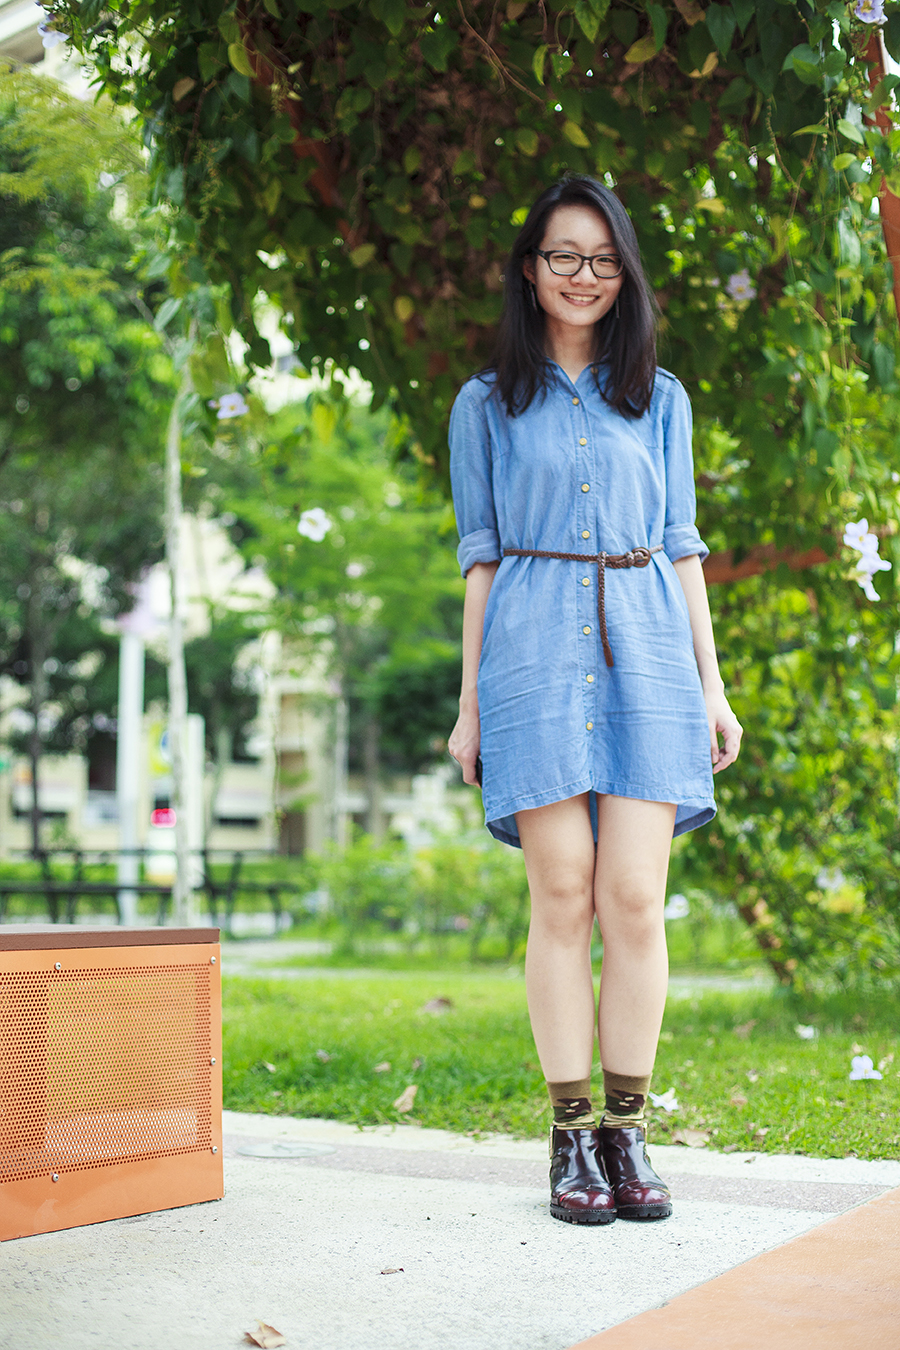 Uniqlo denim long-sleeved dress, brown braid thin belt, Gap black frame glasses, Stance green camouflage socks, Jeffrey Campbell Flamel cutout booties in wine.